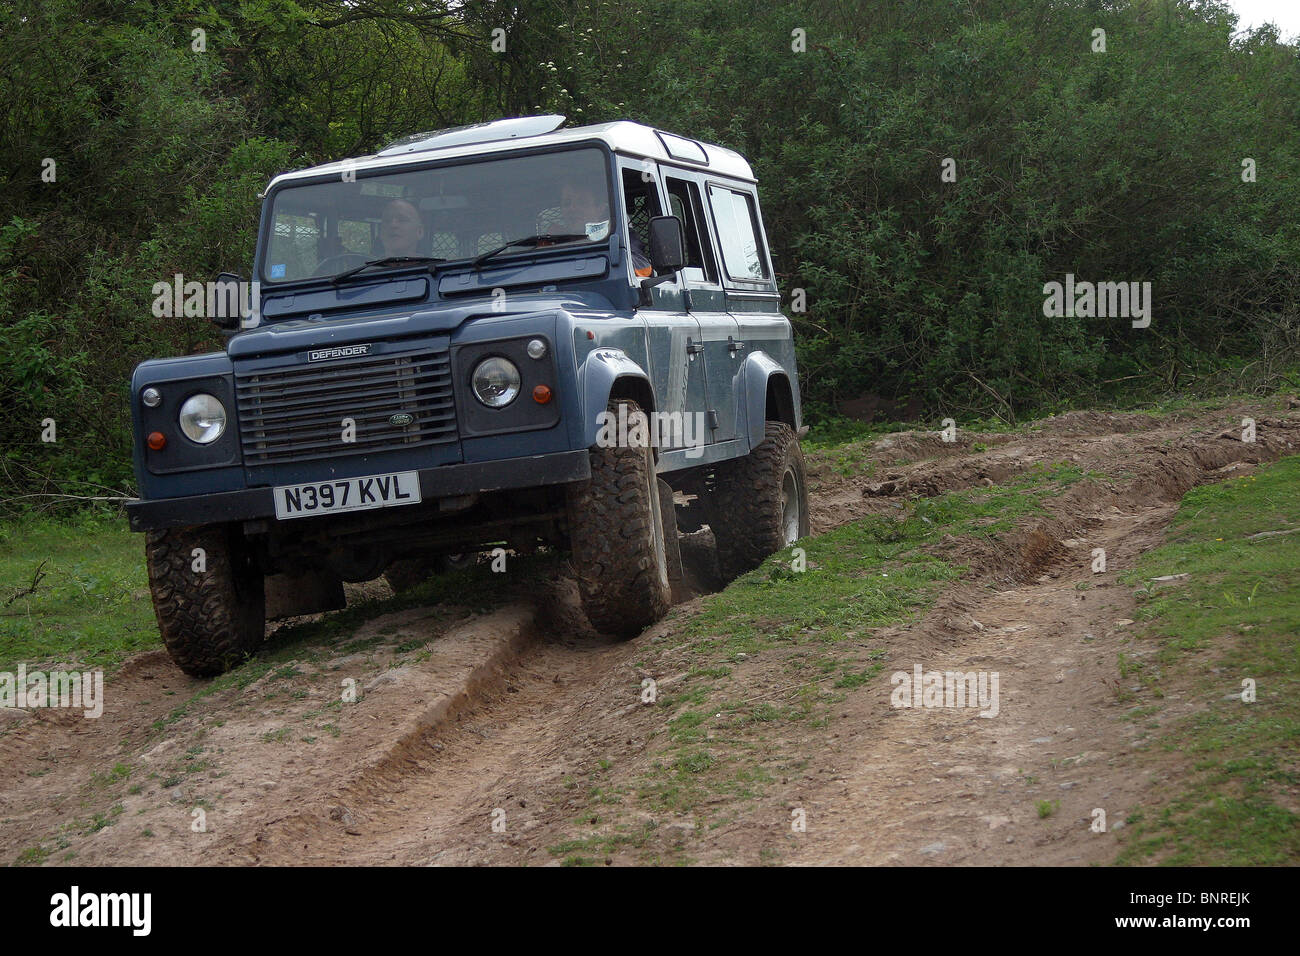 110 Defender Stock Photos & 110 Defender Stock Images - Alamy